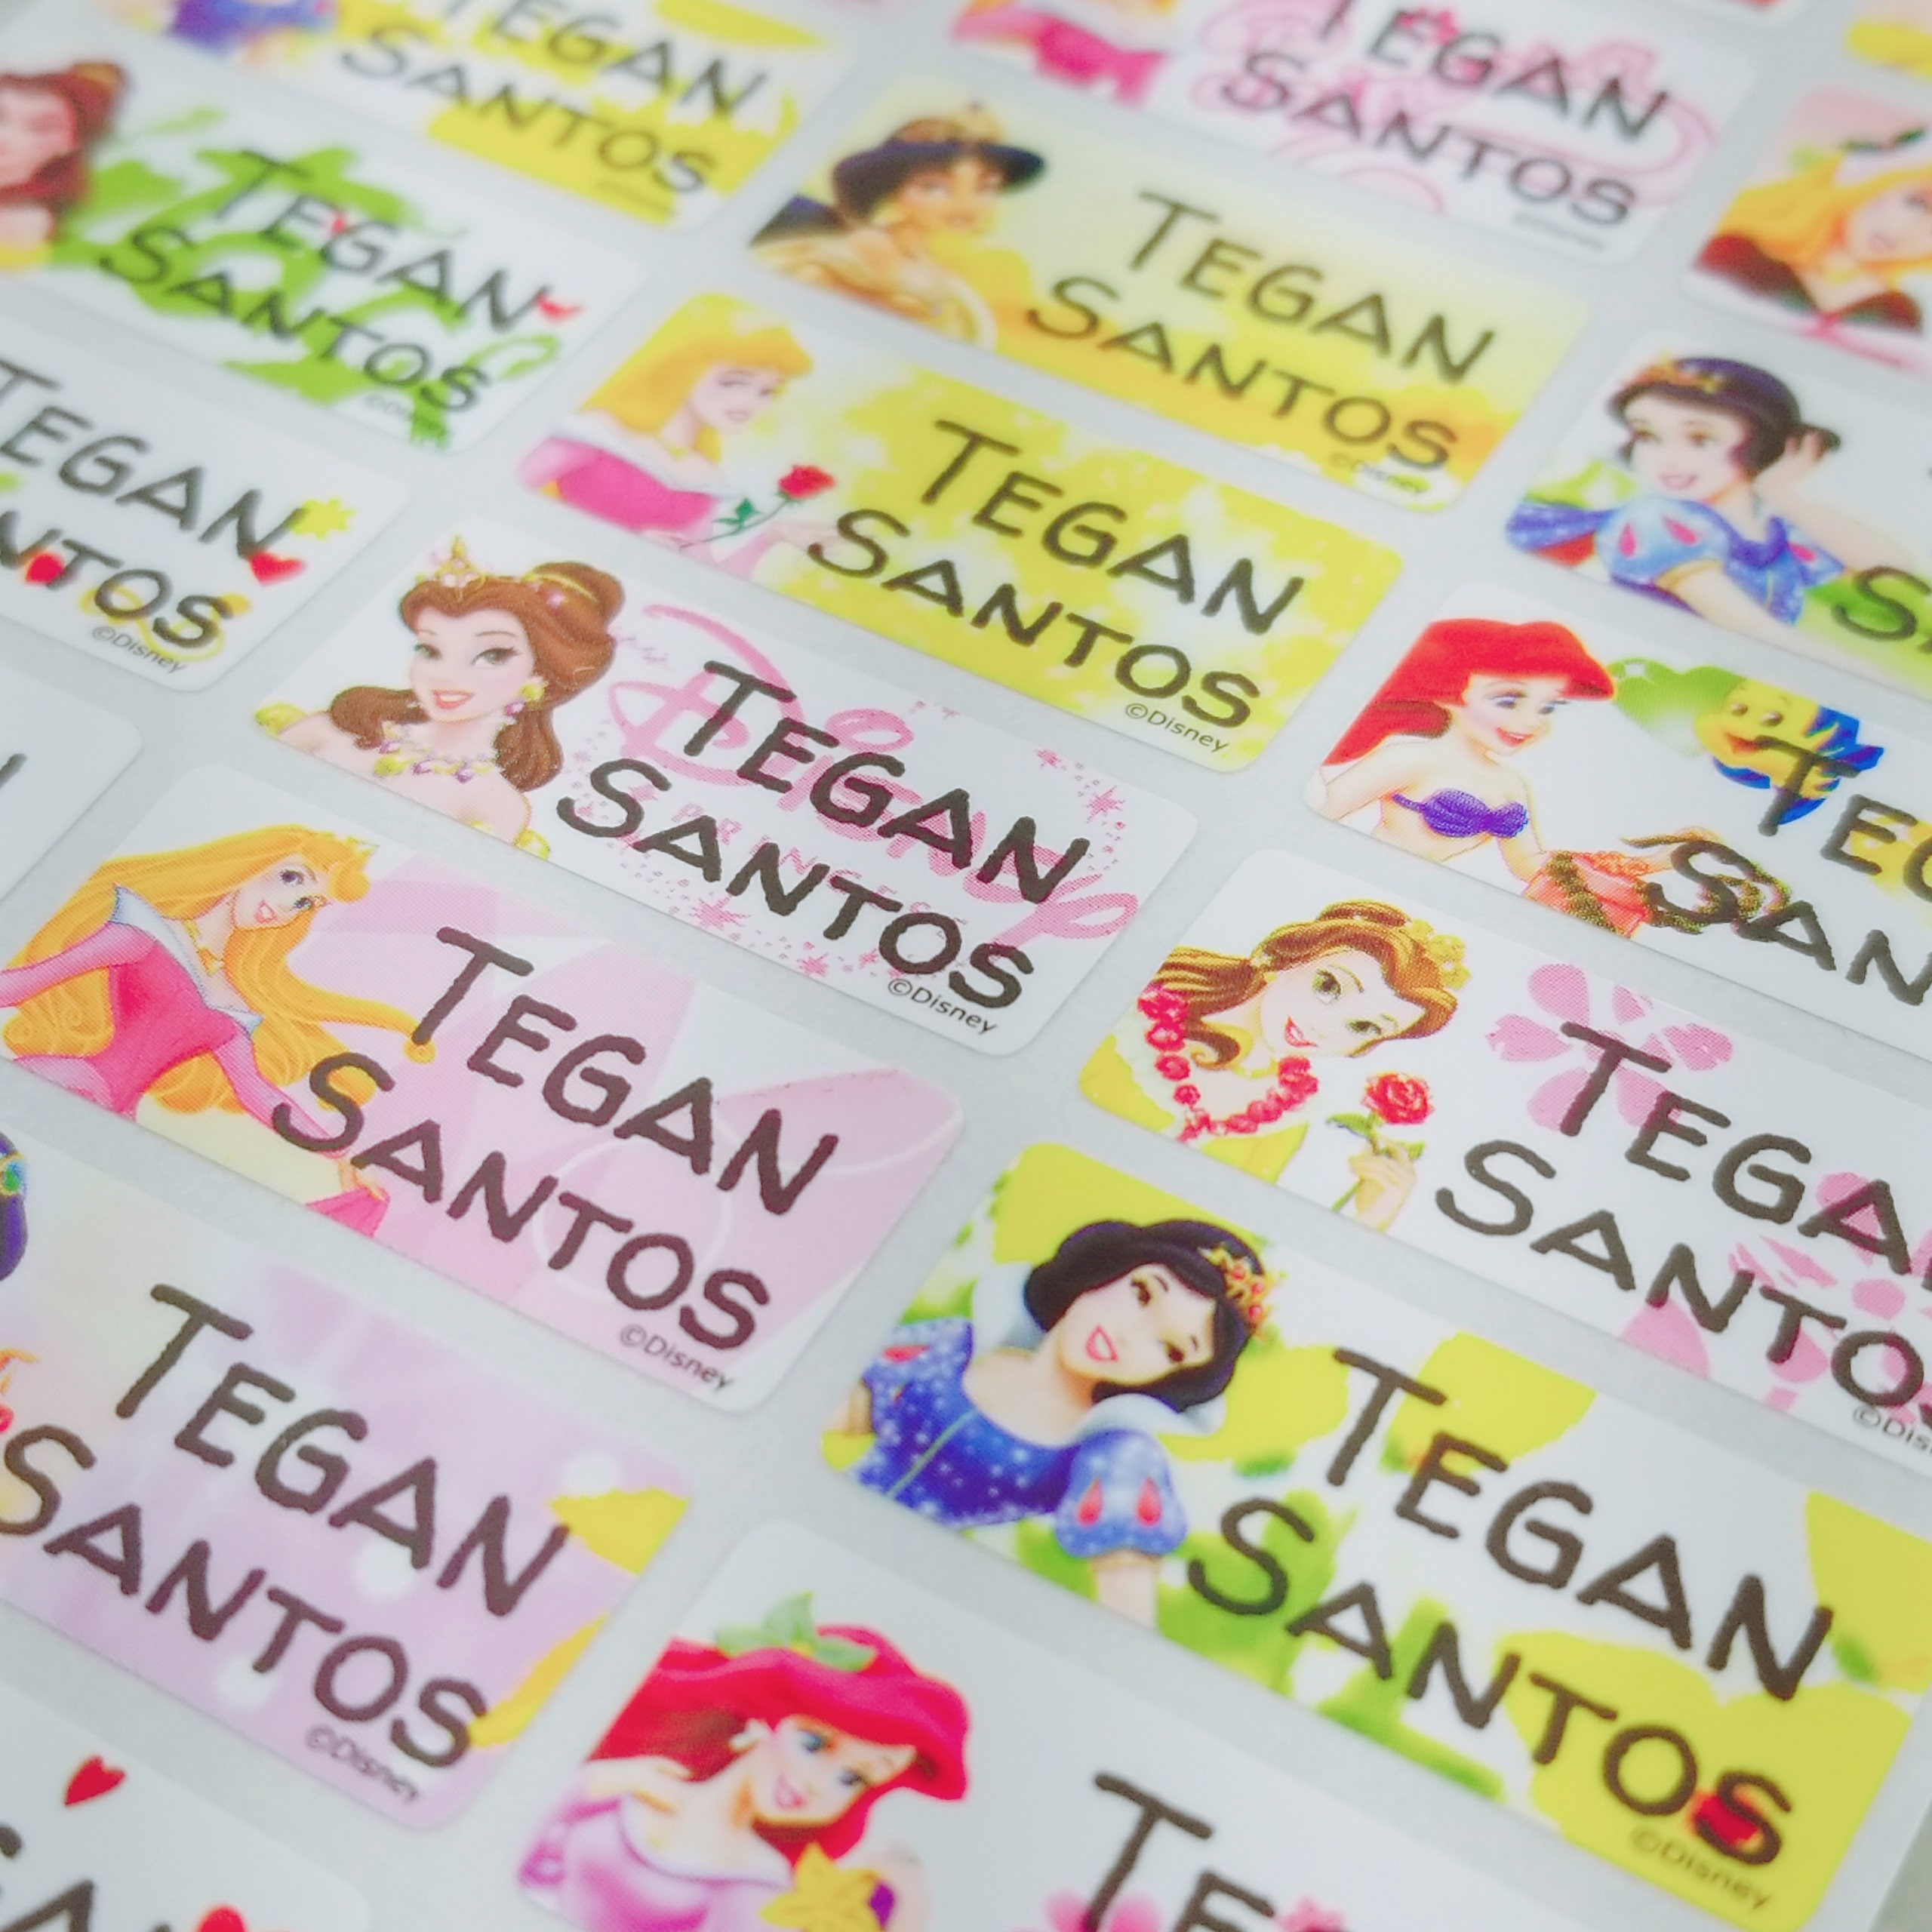 Name label school label waterproof label daycare stickers kids sticker labels gift stickers personalized waterproof label custom princess